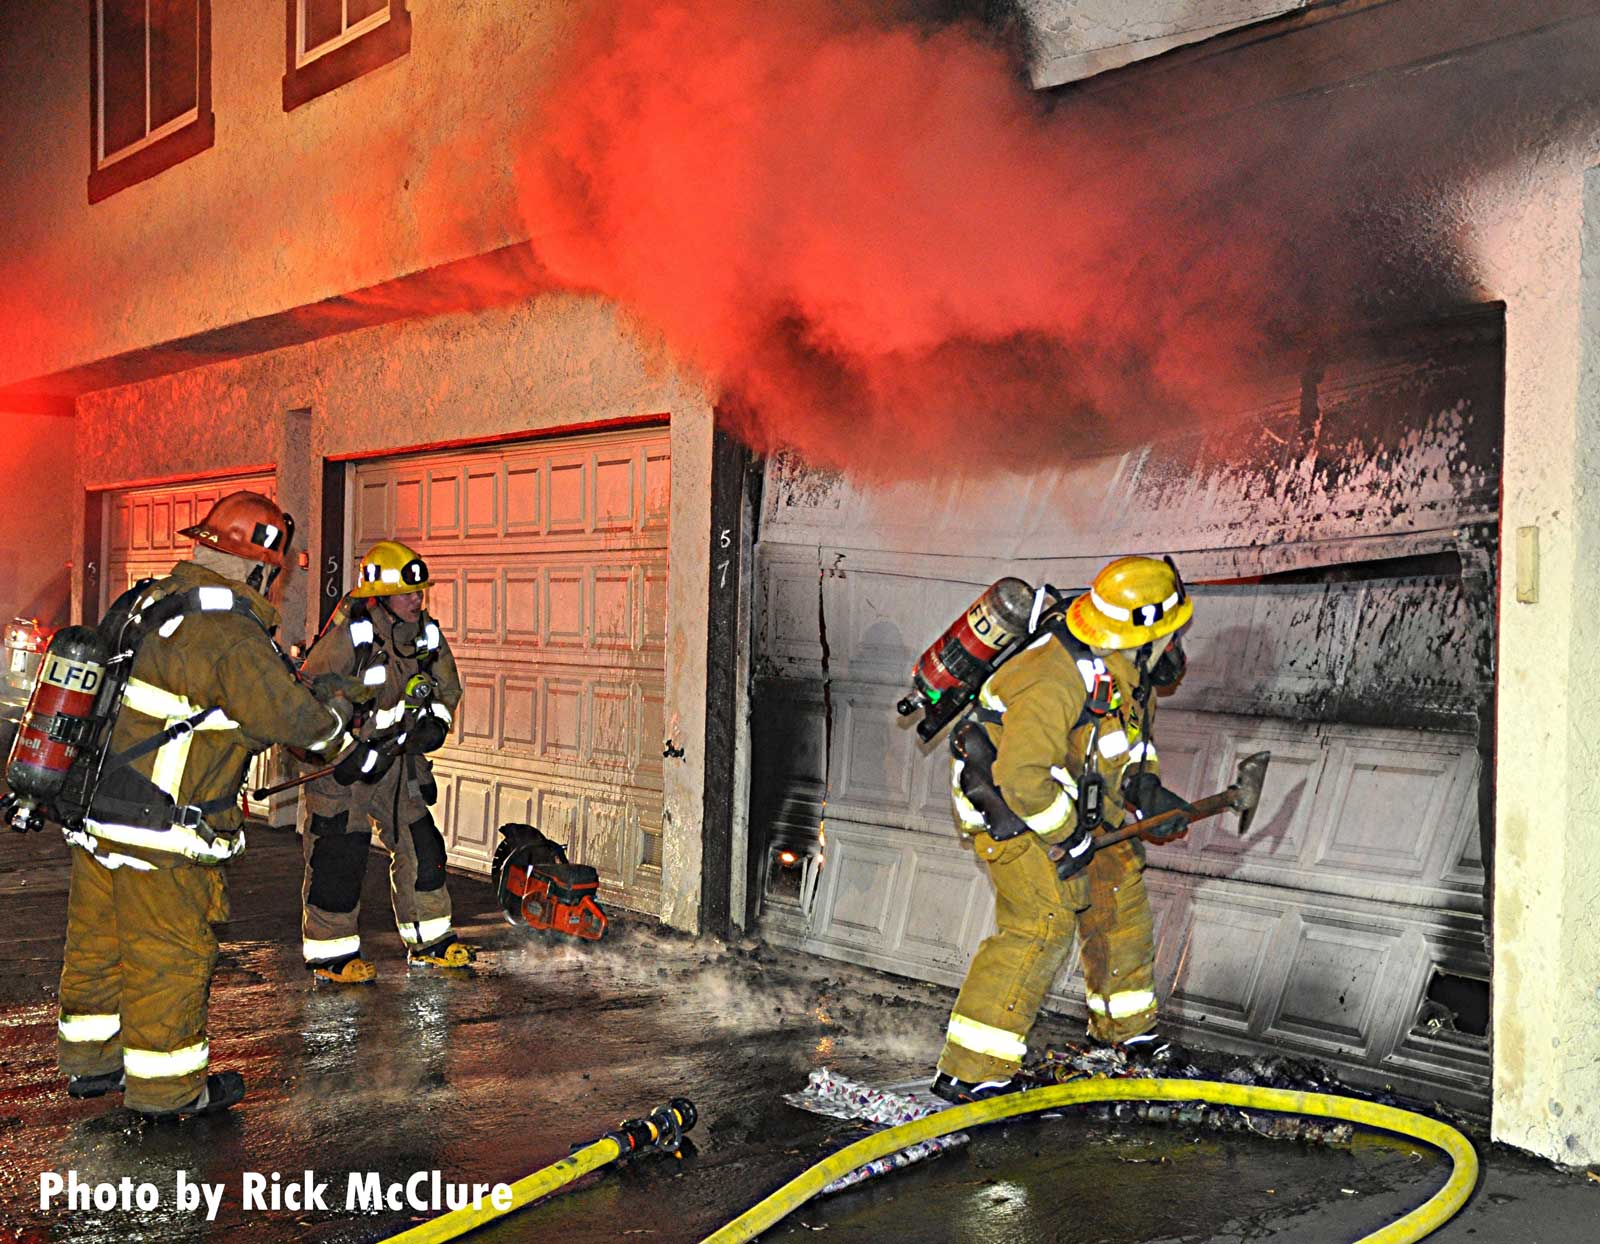 Smoke shoots from a garage as an LAFD firefighter attempts to gain entry